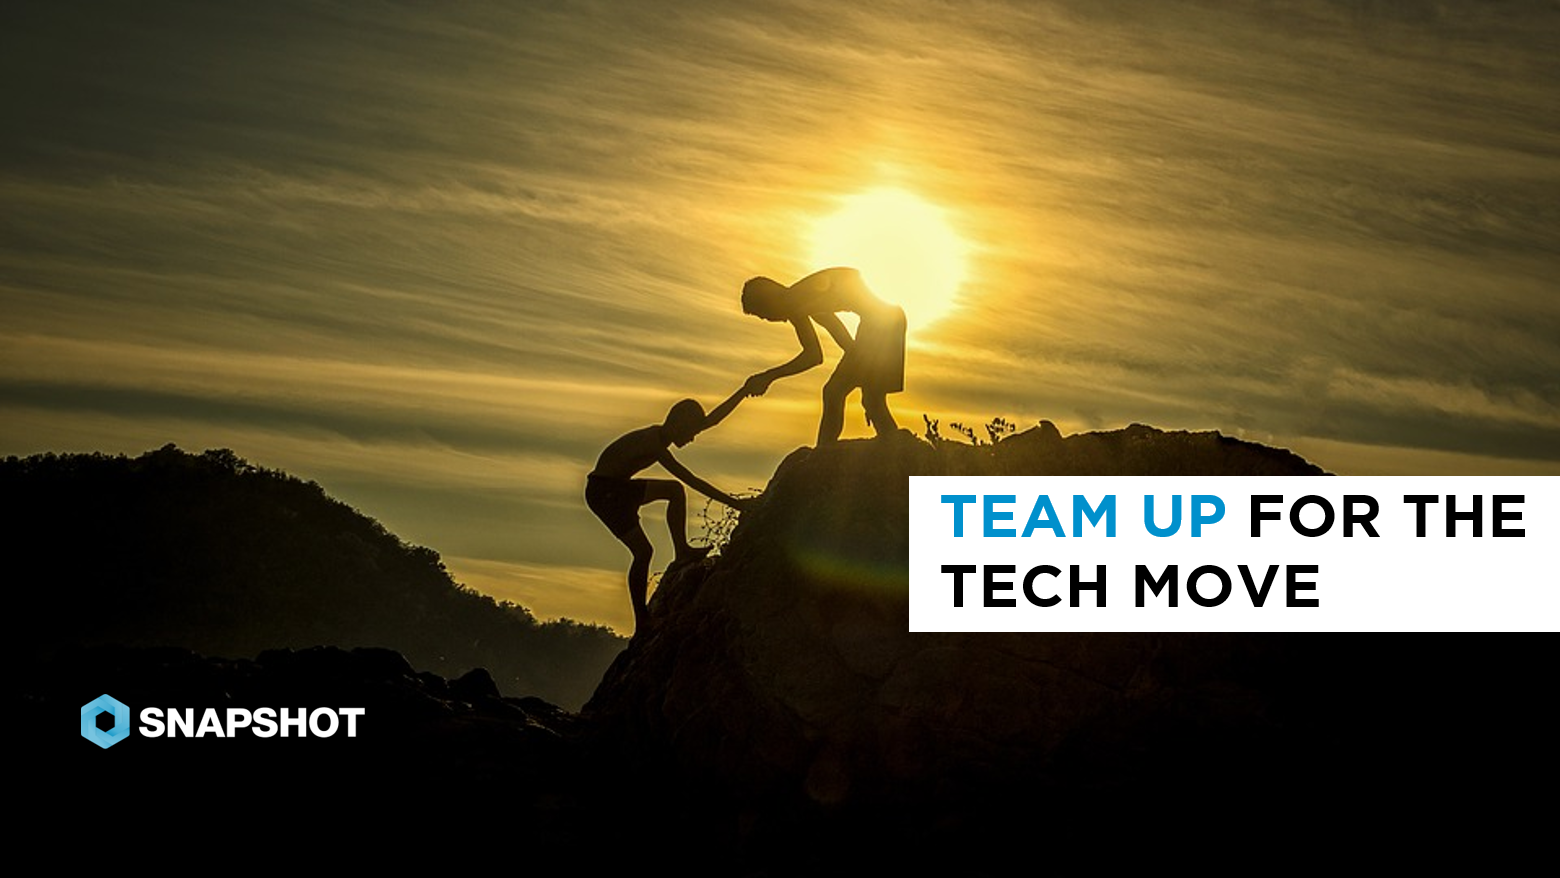 09.06.2019 TEAM UP FOR THE TECH MOVE